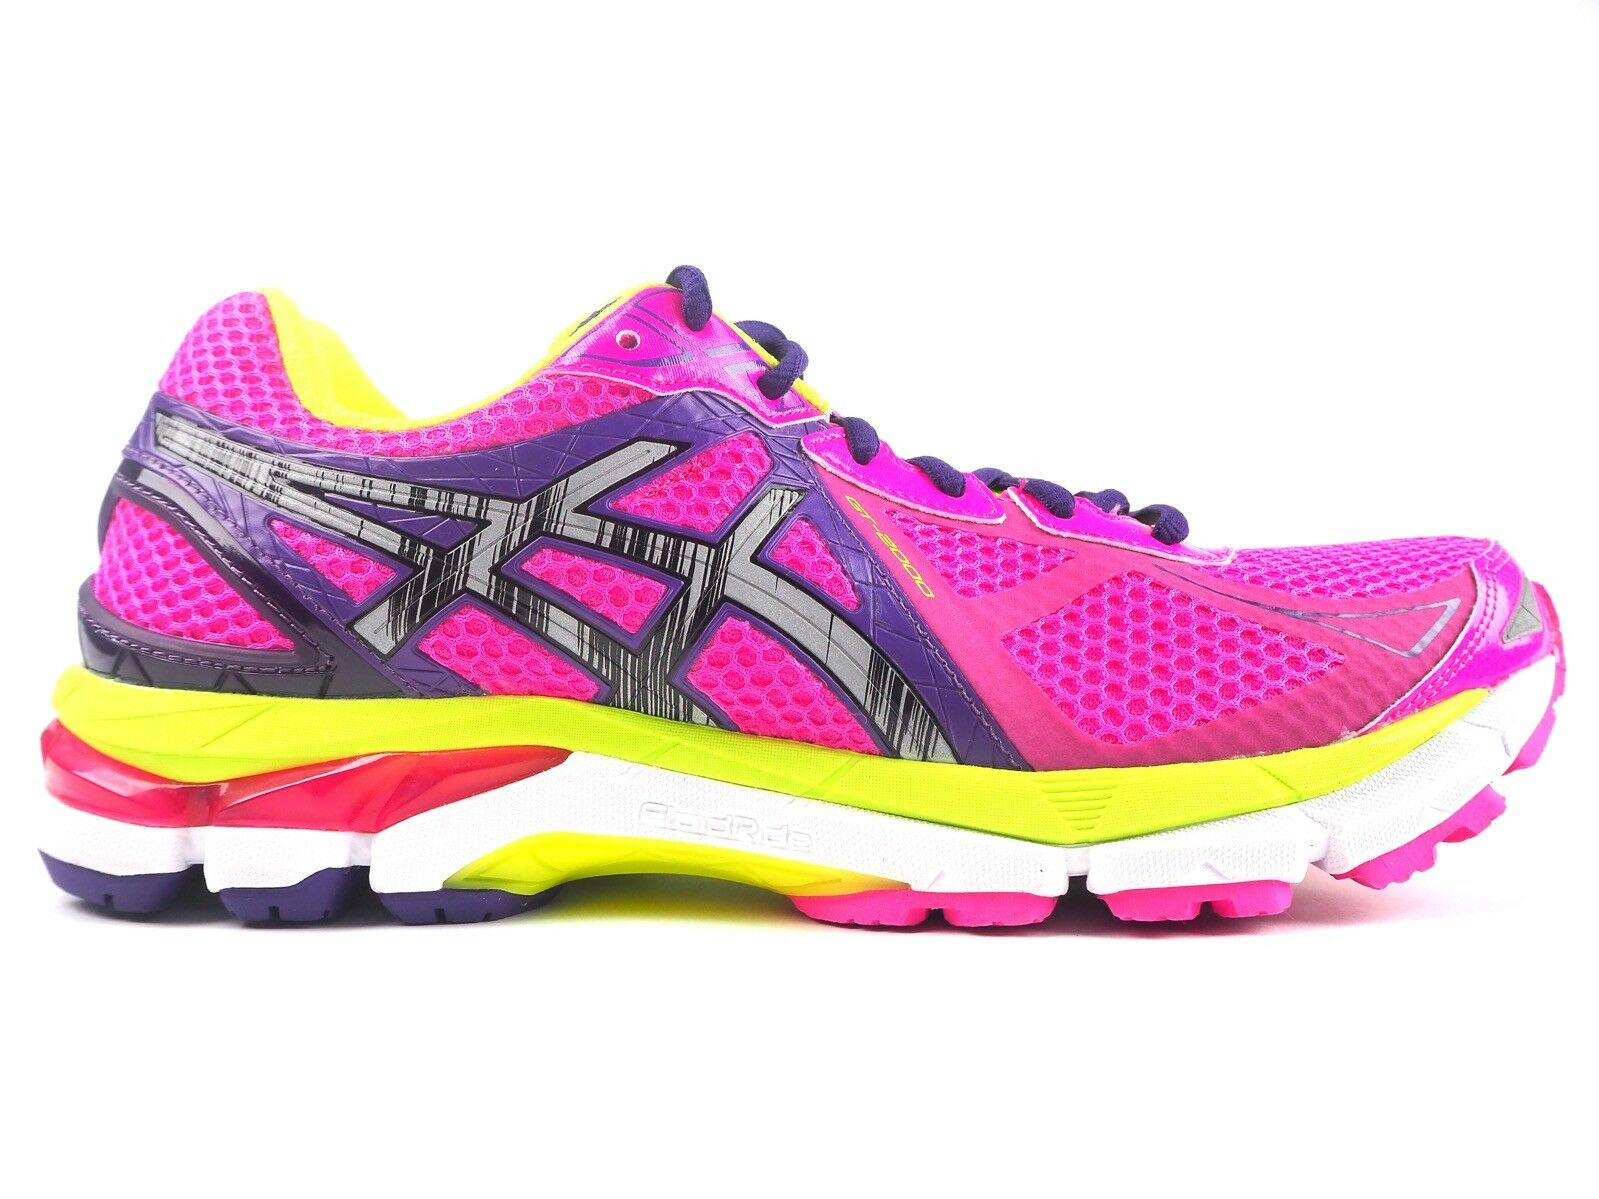 Womens Asics Gel 2000 3 Lite Show T550Q 3593 Lace Lace Lace Up Pink Running Mesh Trainers 6e5651